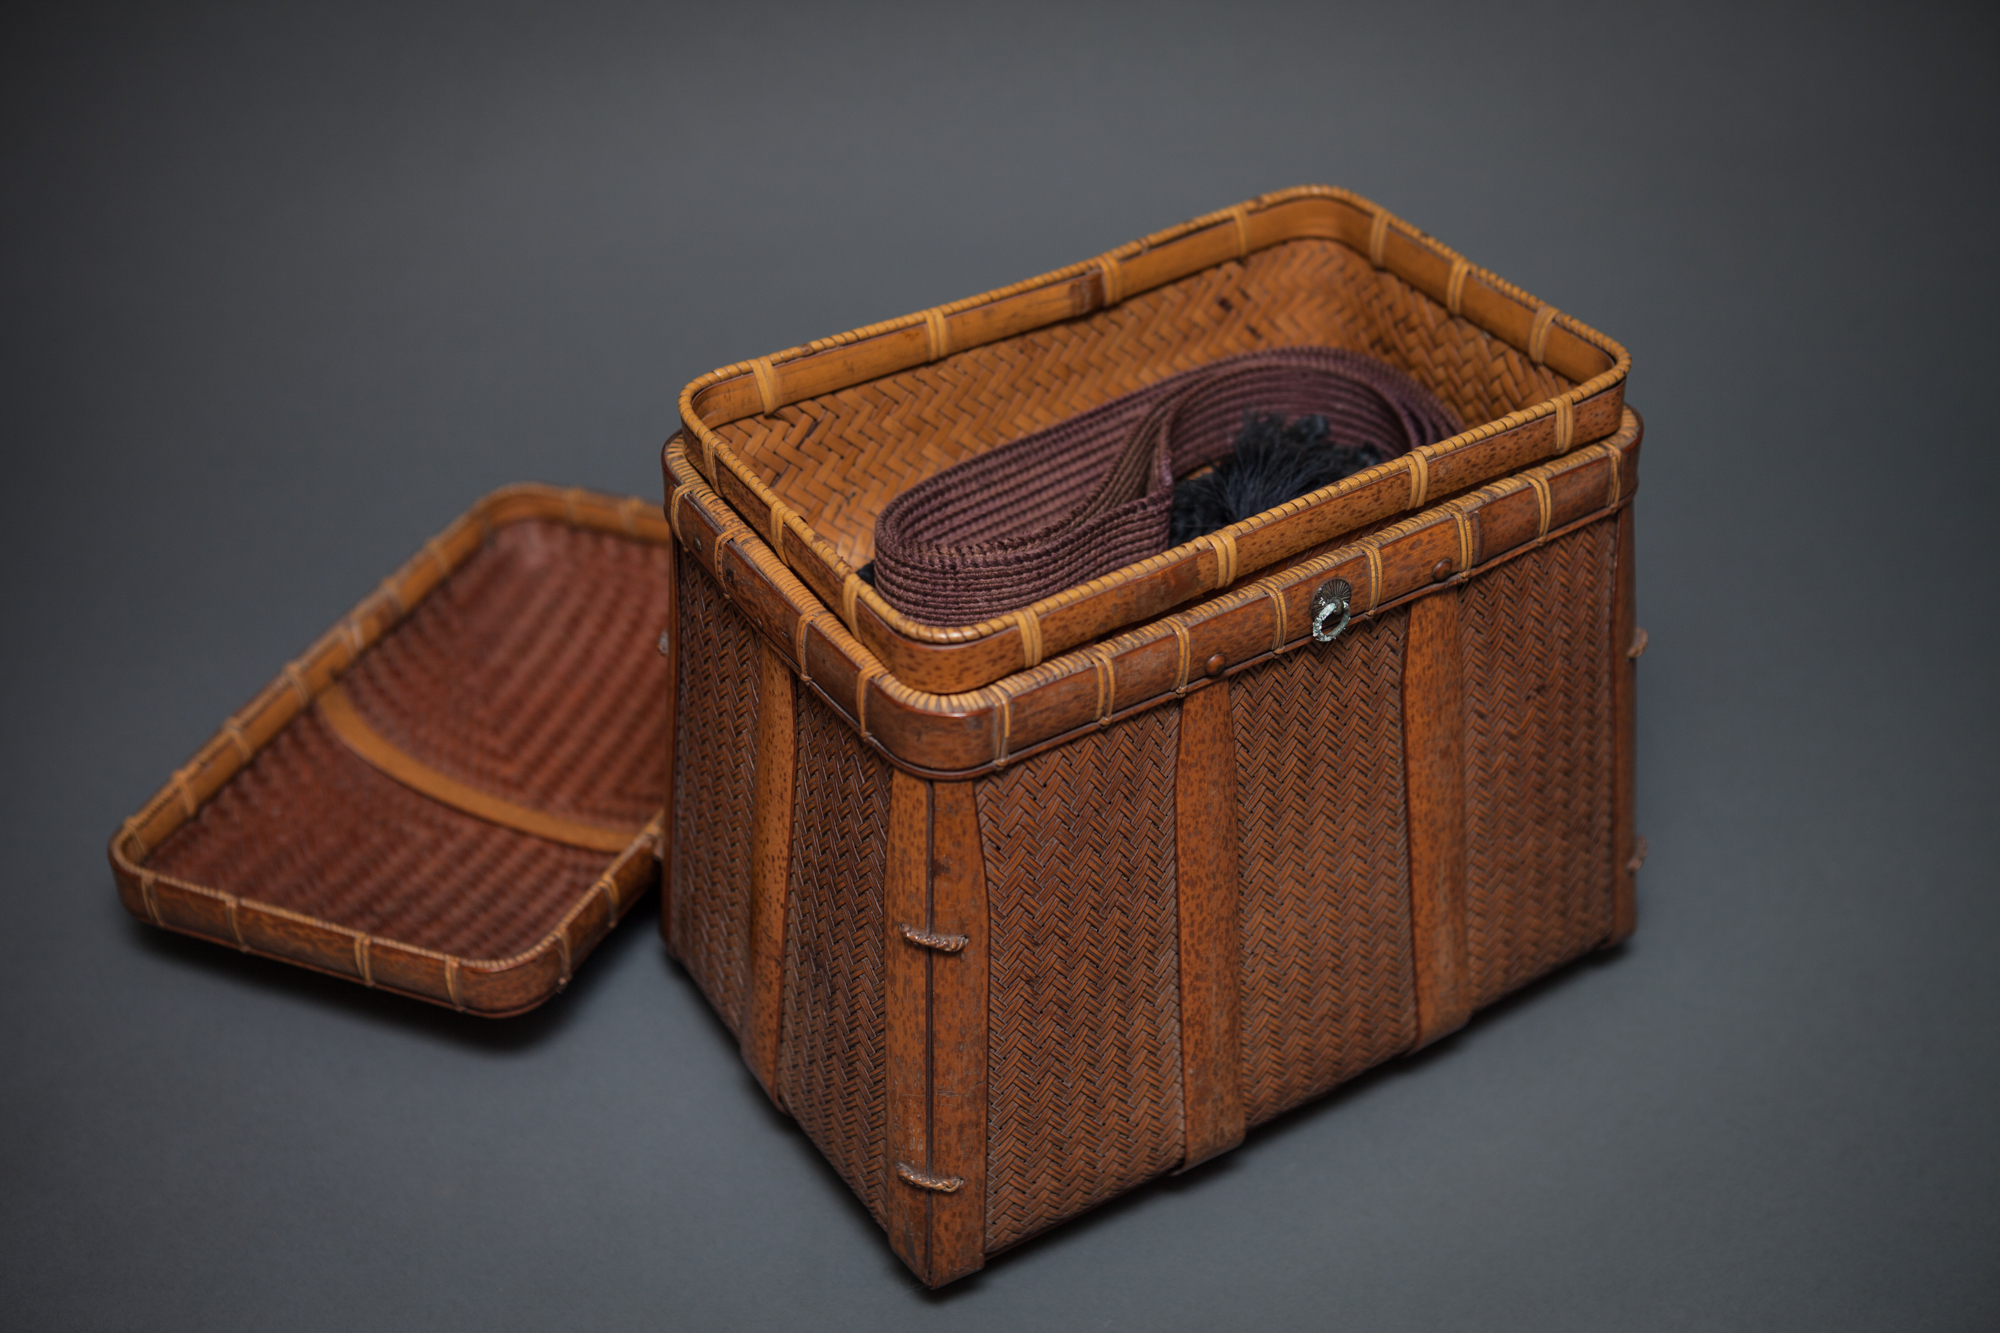 Japanese Woven Bamboo Sewing Basket